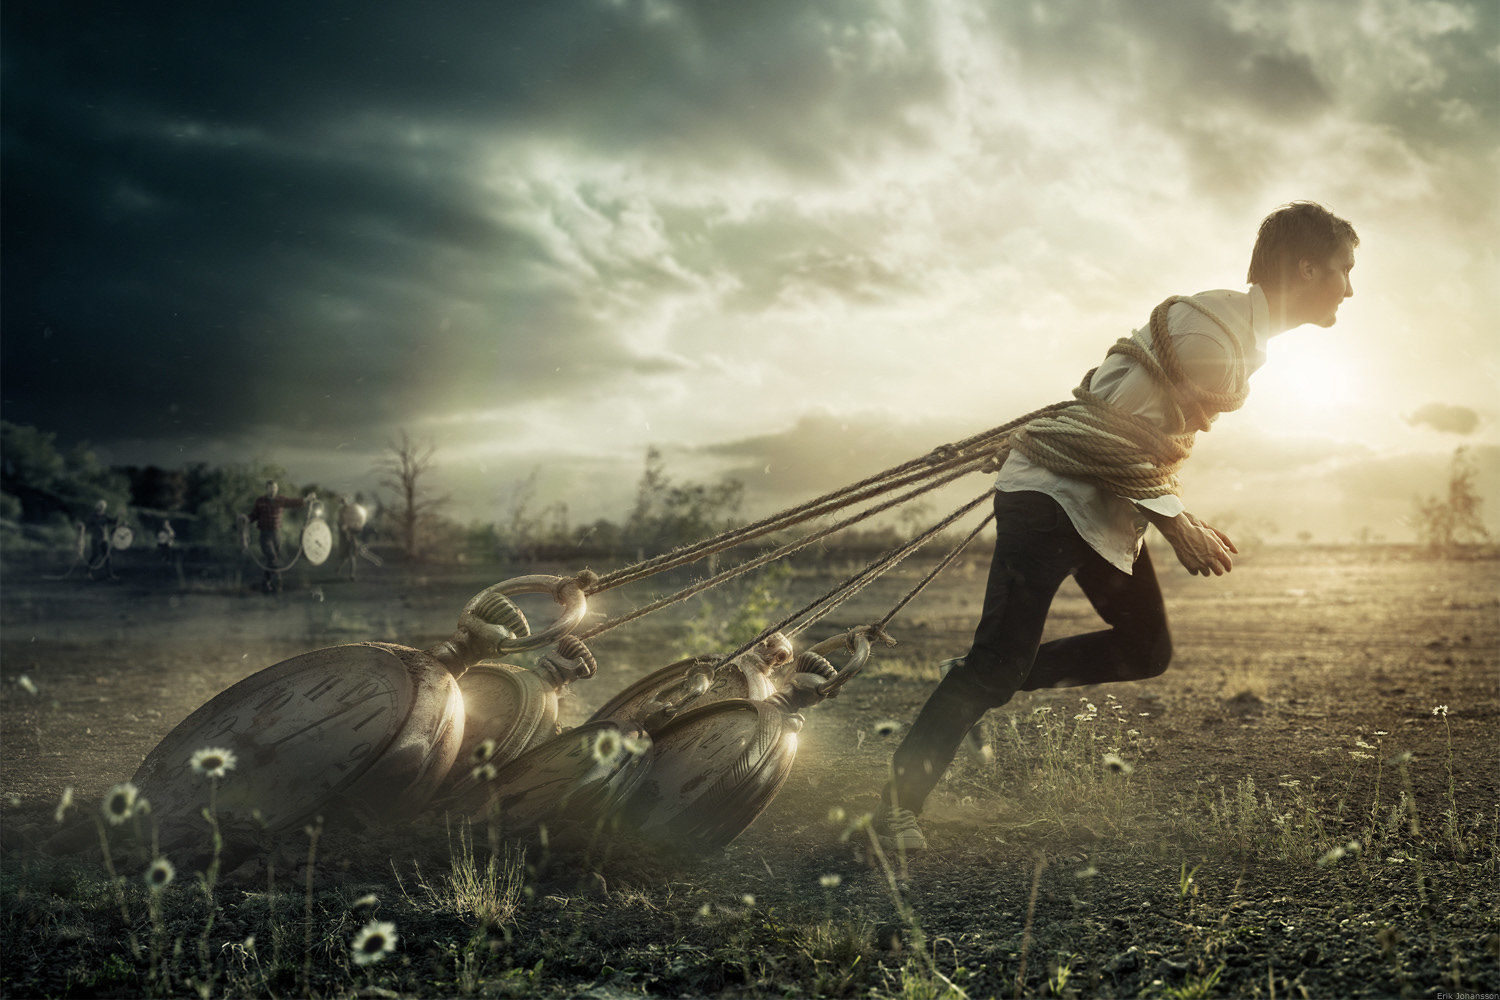 'Give me Time' by Erik Johansson c/o AGENT MOLLY & CO